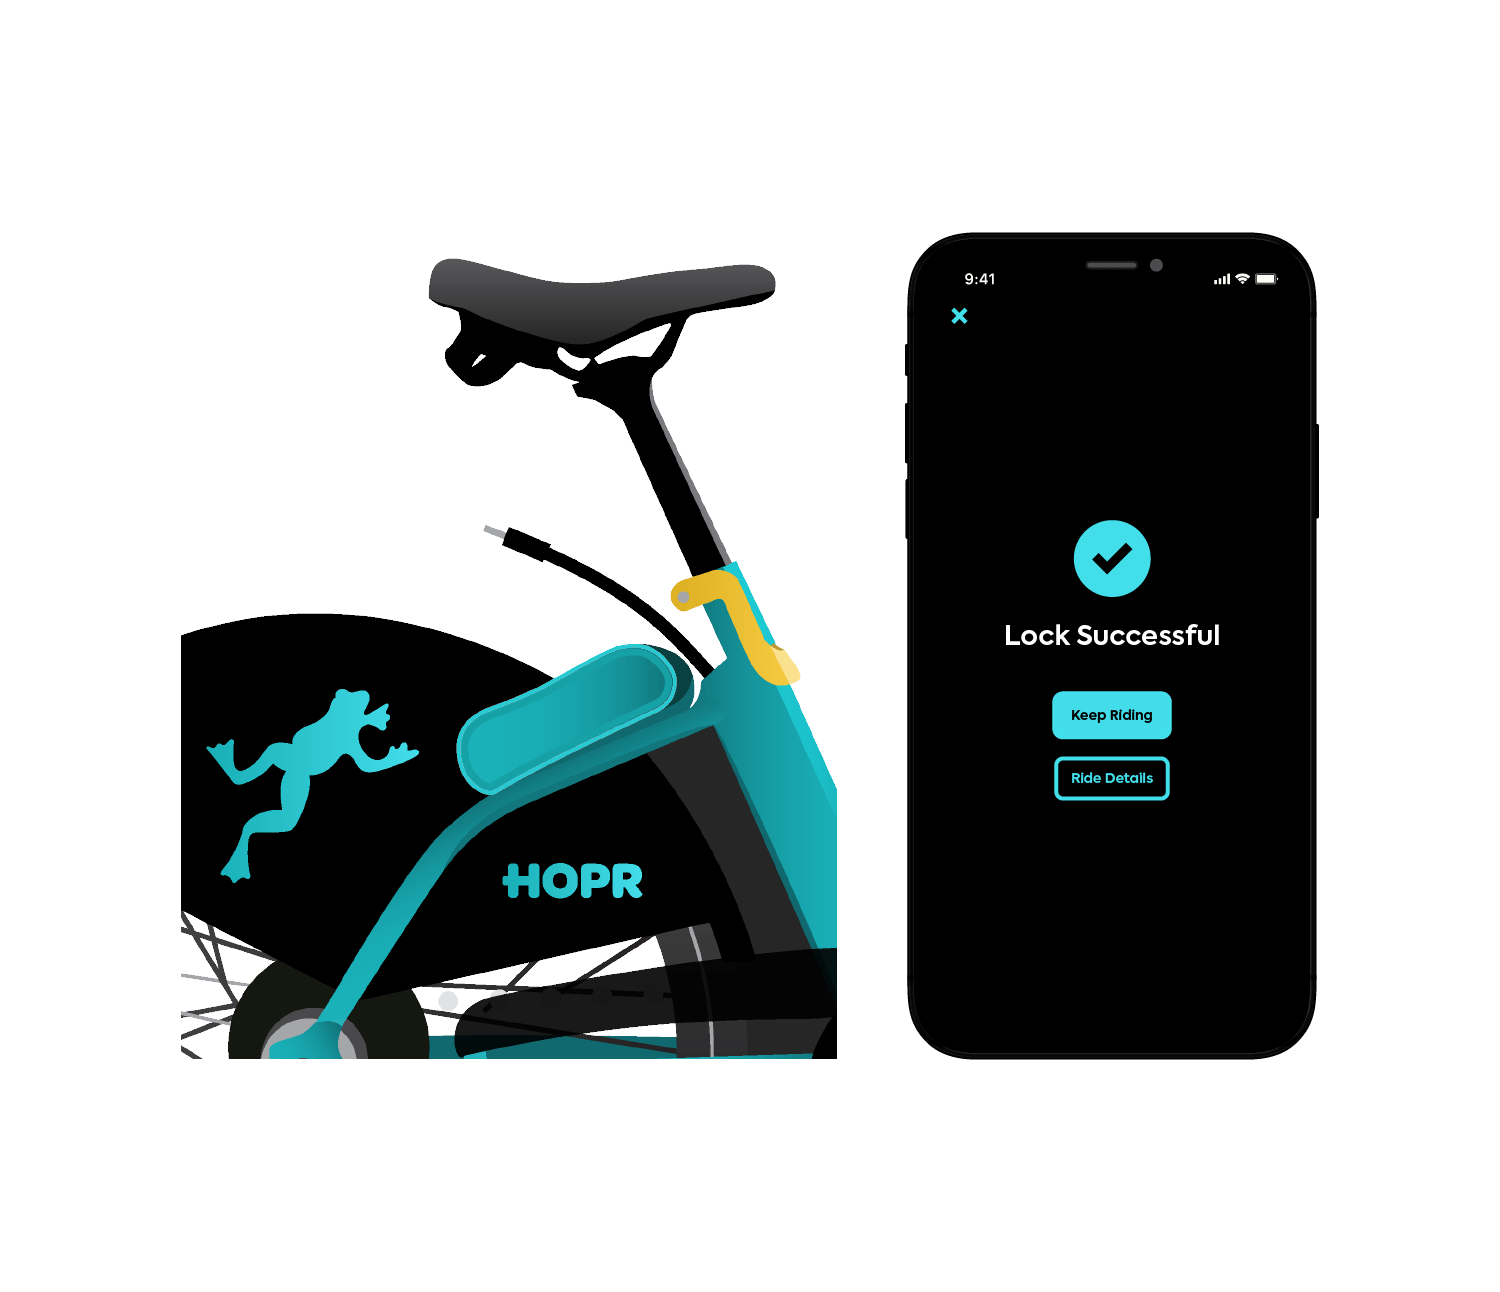 Park HOPR bikes safely and lock them with the HOPR Transit App